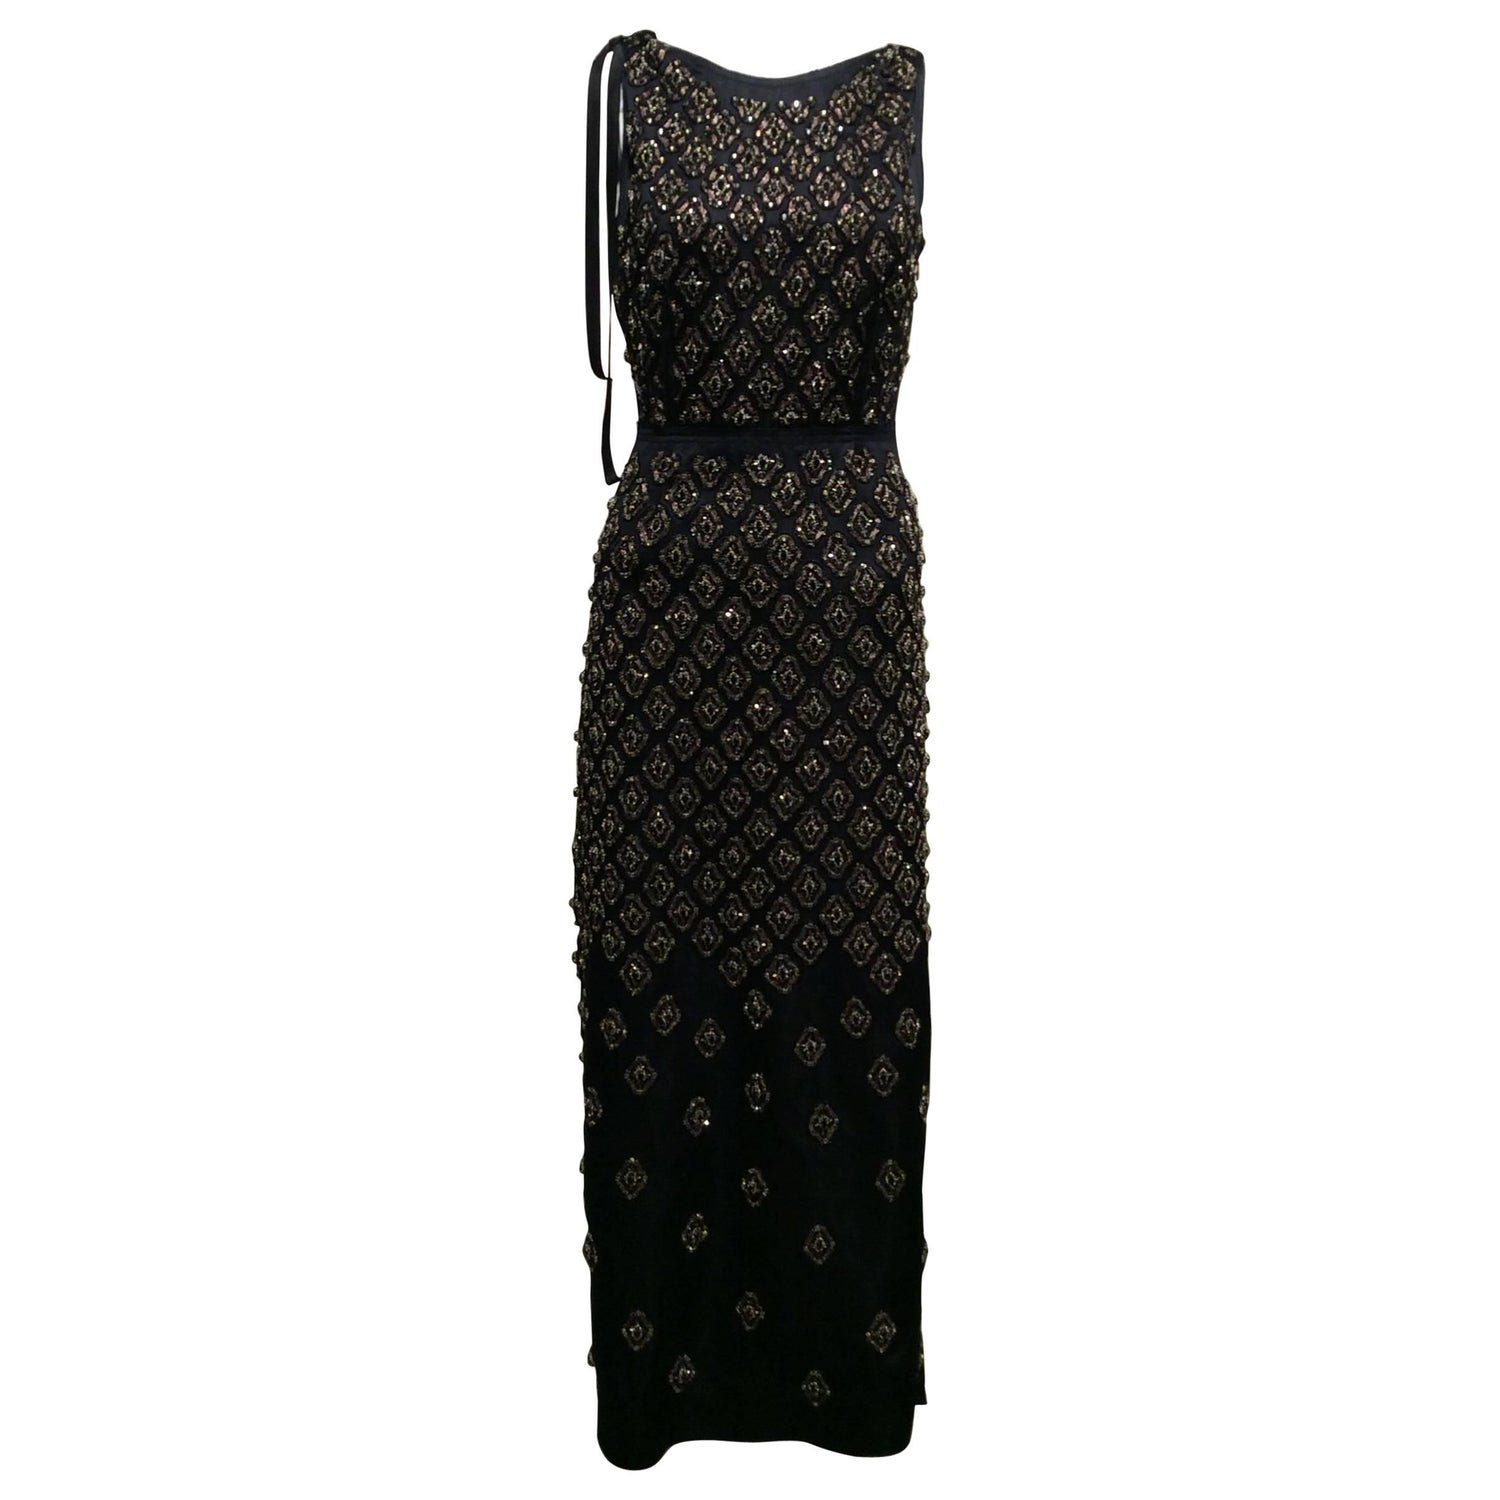 Vintage Prada Evening Dresses and Gowns - 55 For Sale at 1stdibs